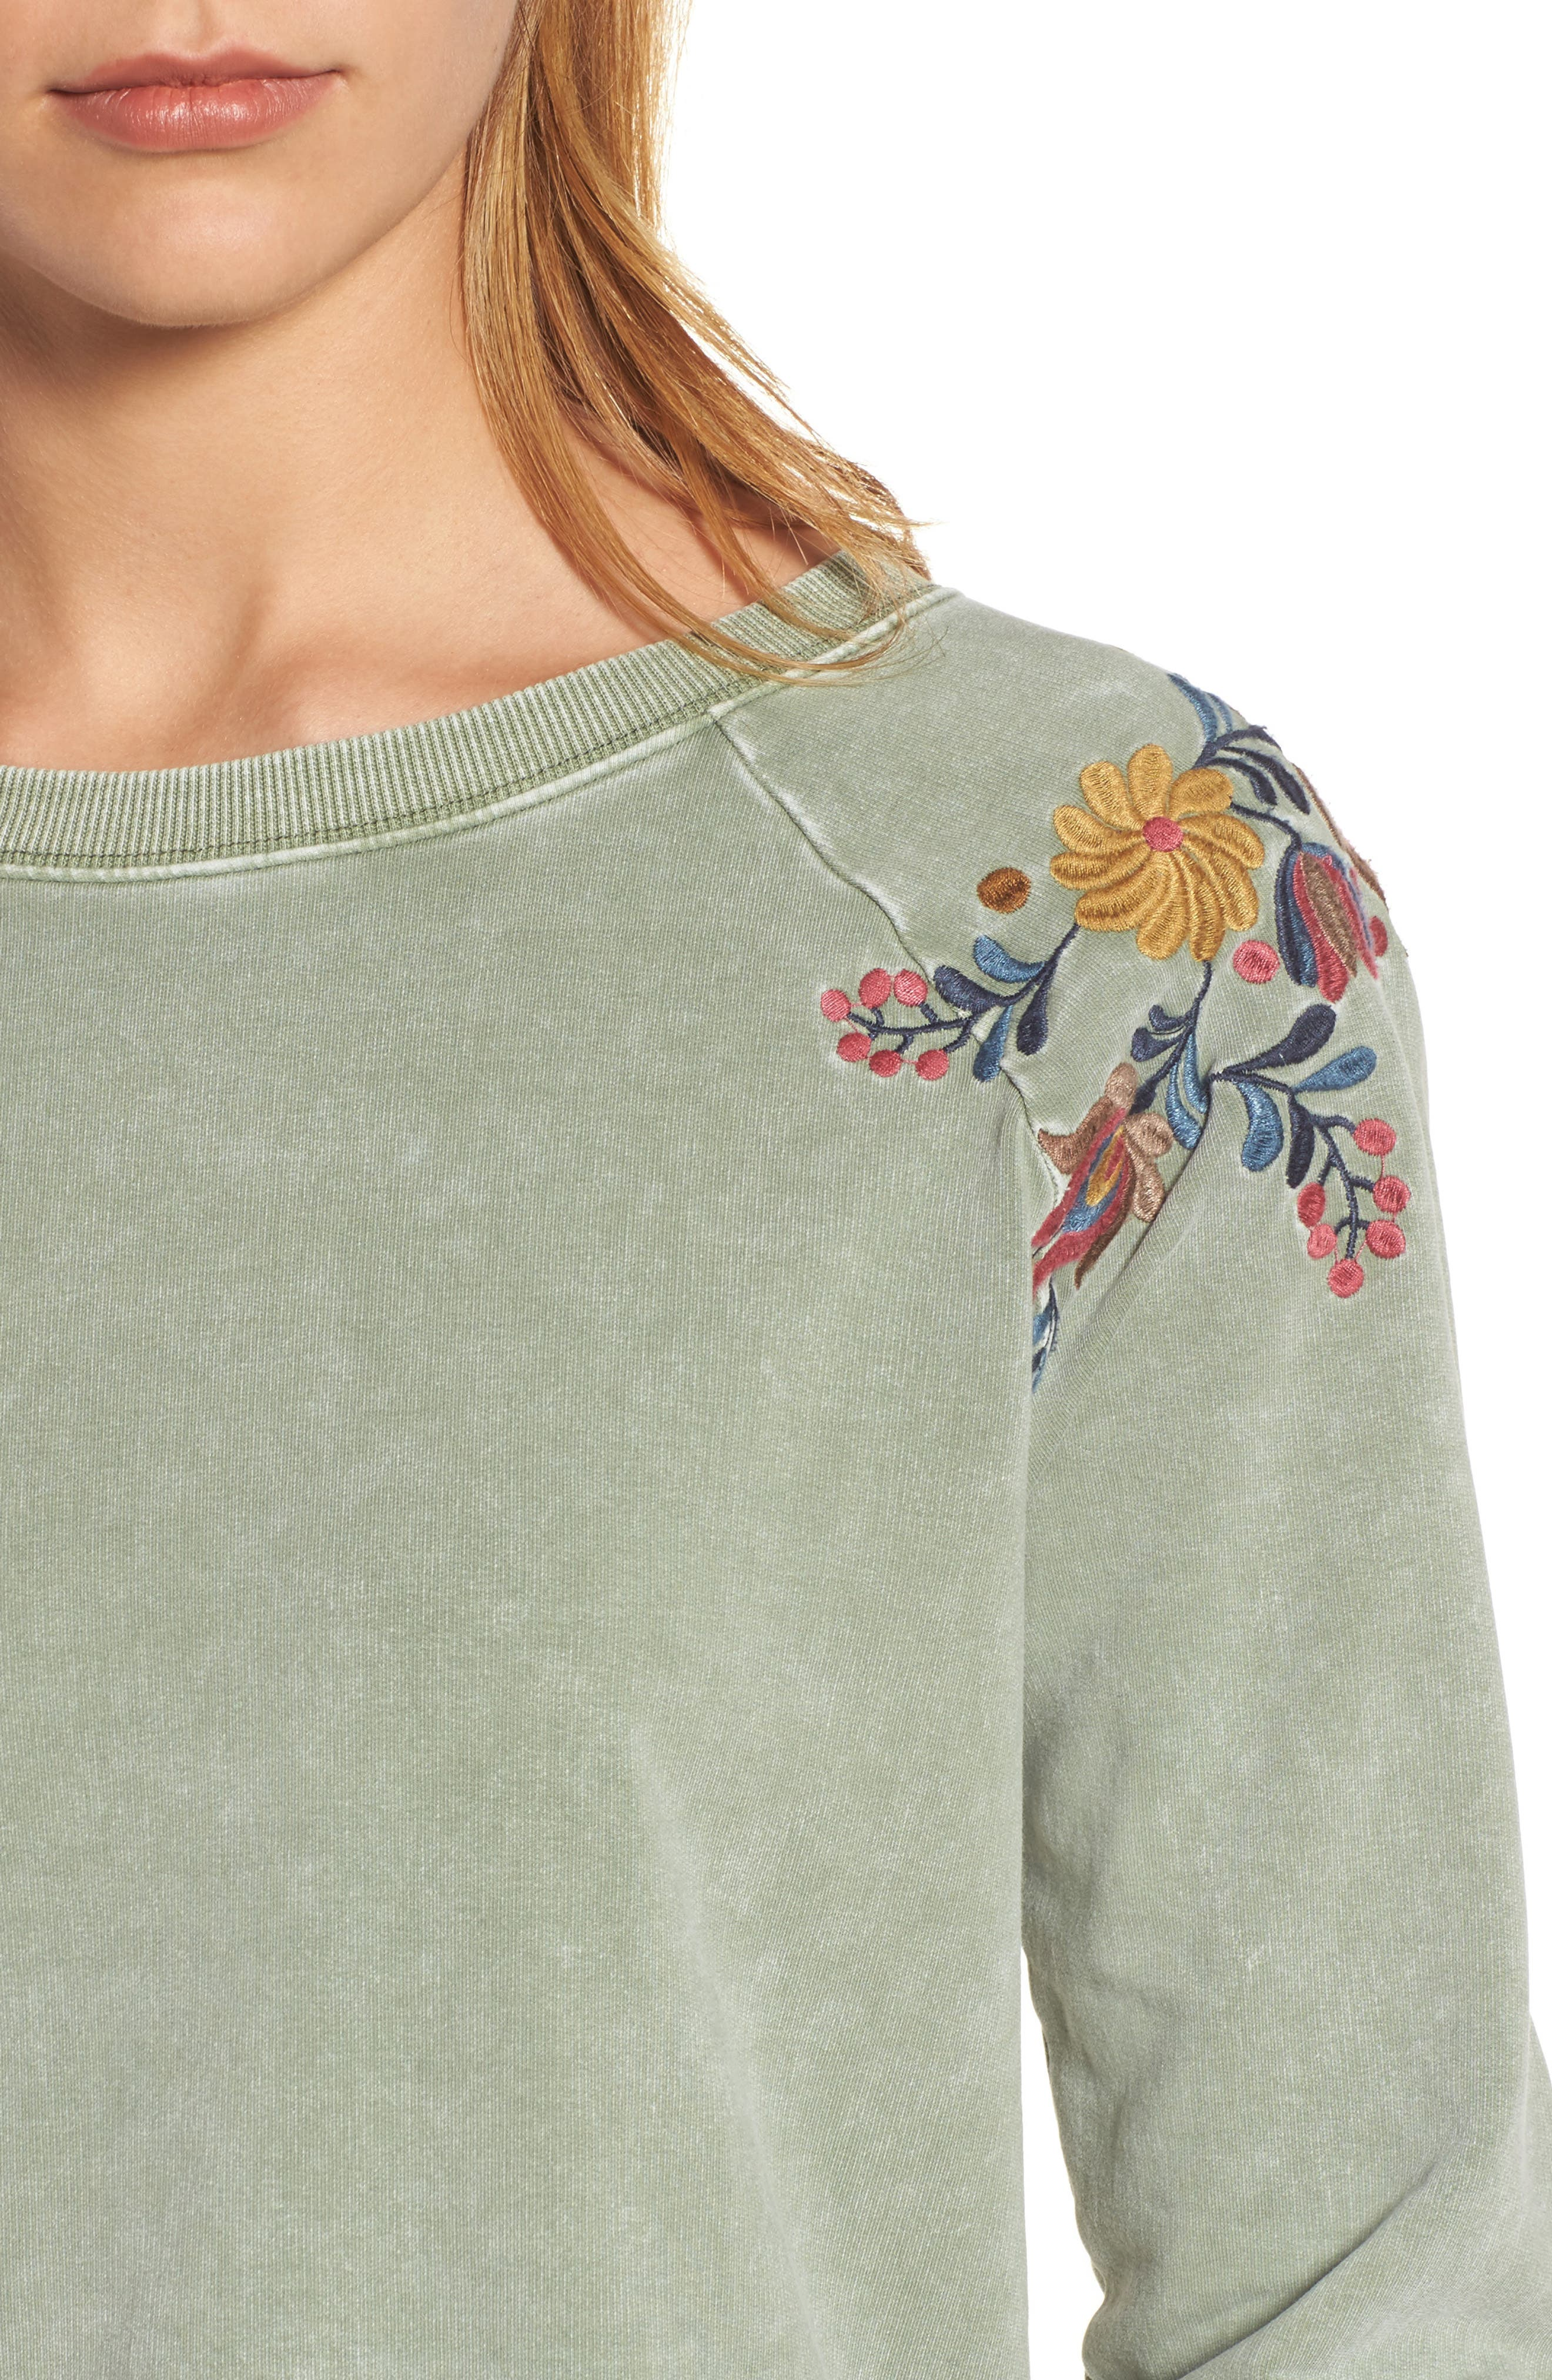 Embroidered Lace-Up Back Sweatshirt,                             Alternate thumbnail 4, color,                             Army